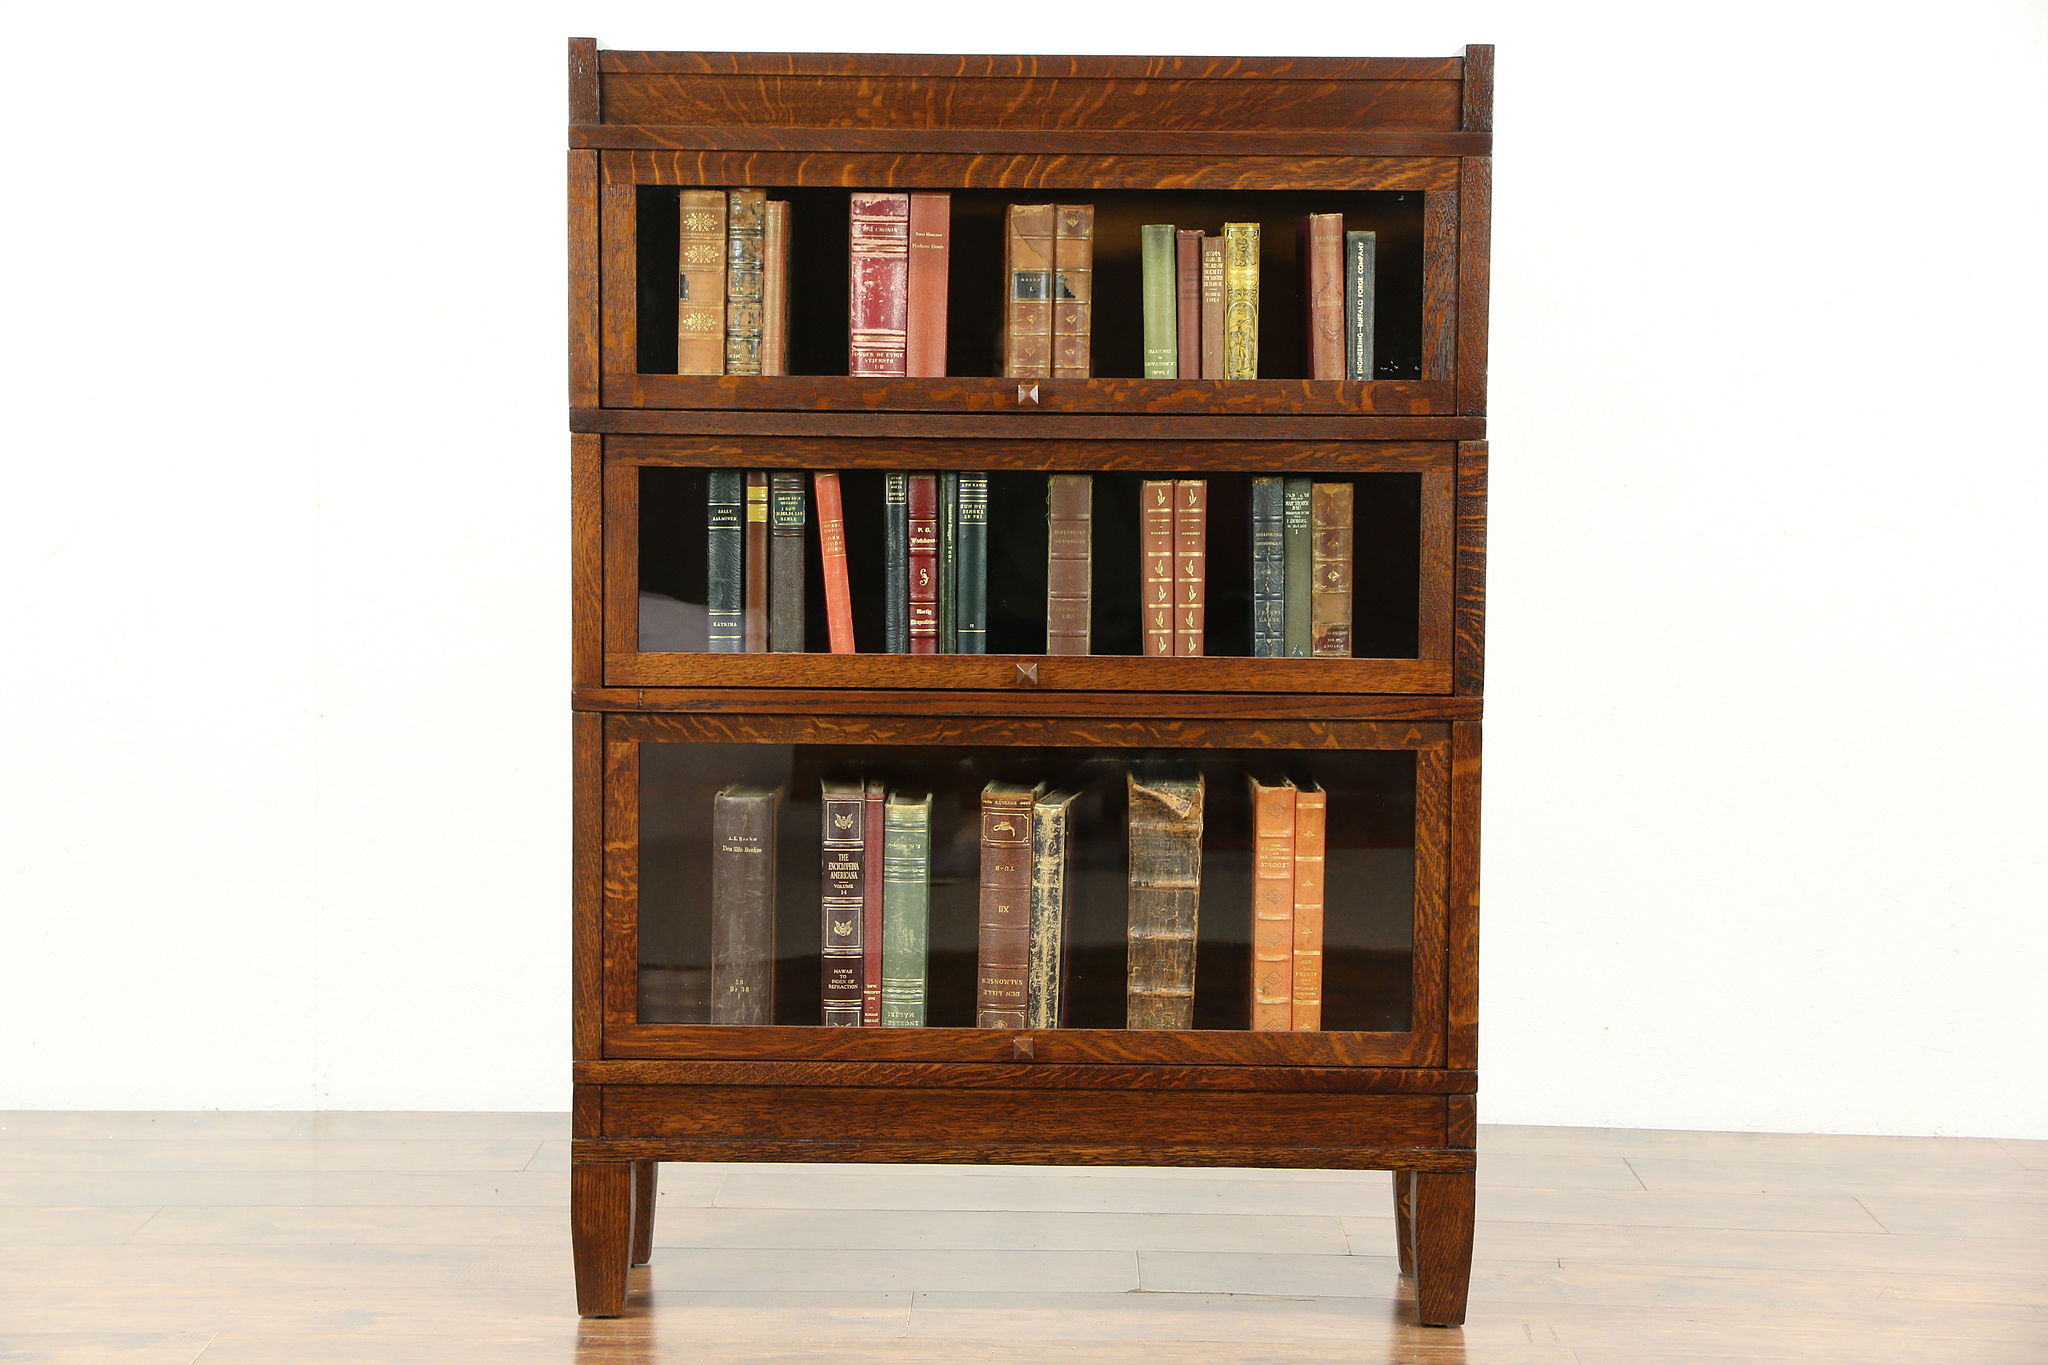 Bookcases, Library Cabinet - Harp Gallery Antique Furniture